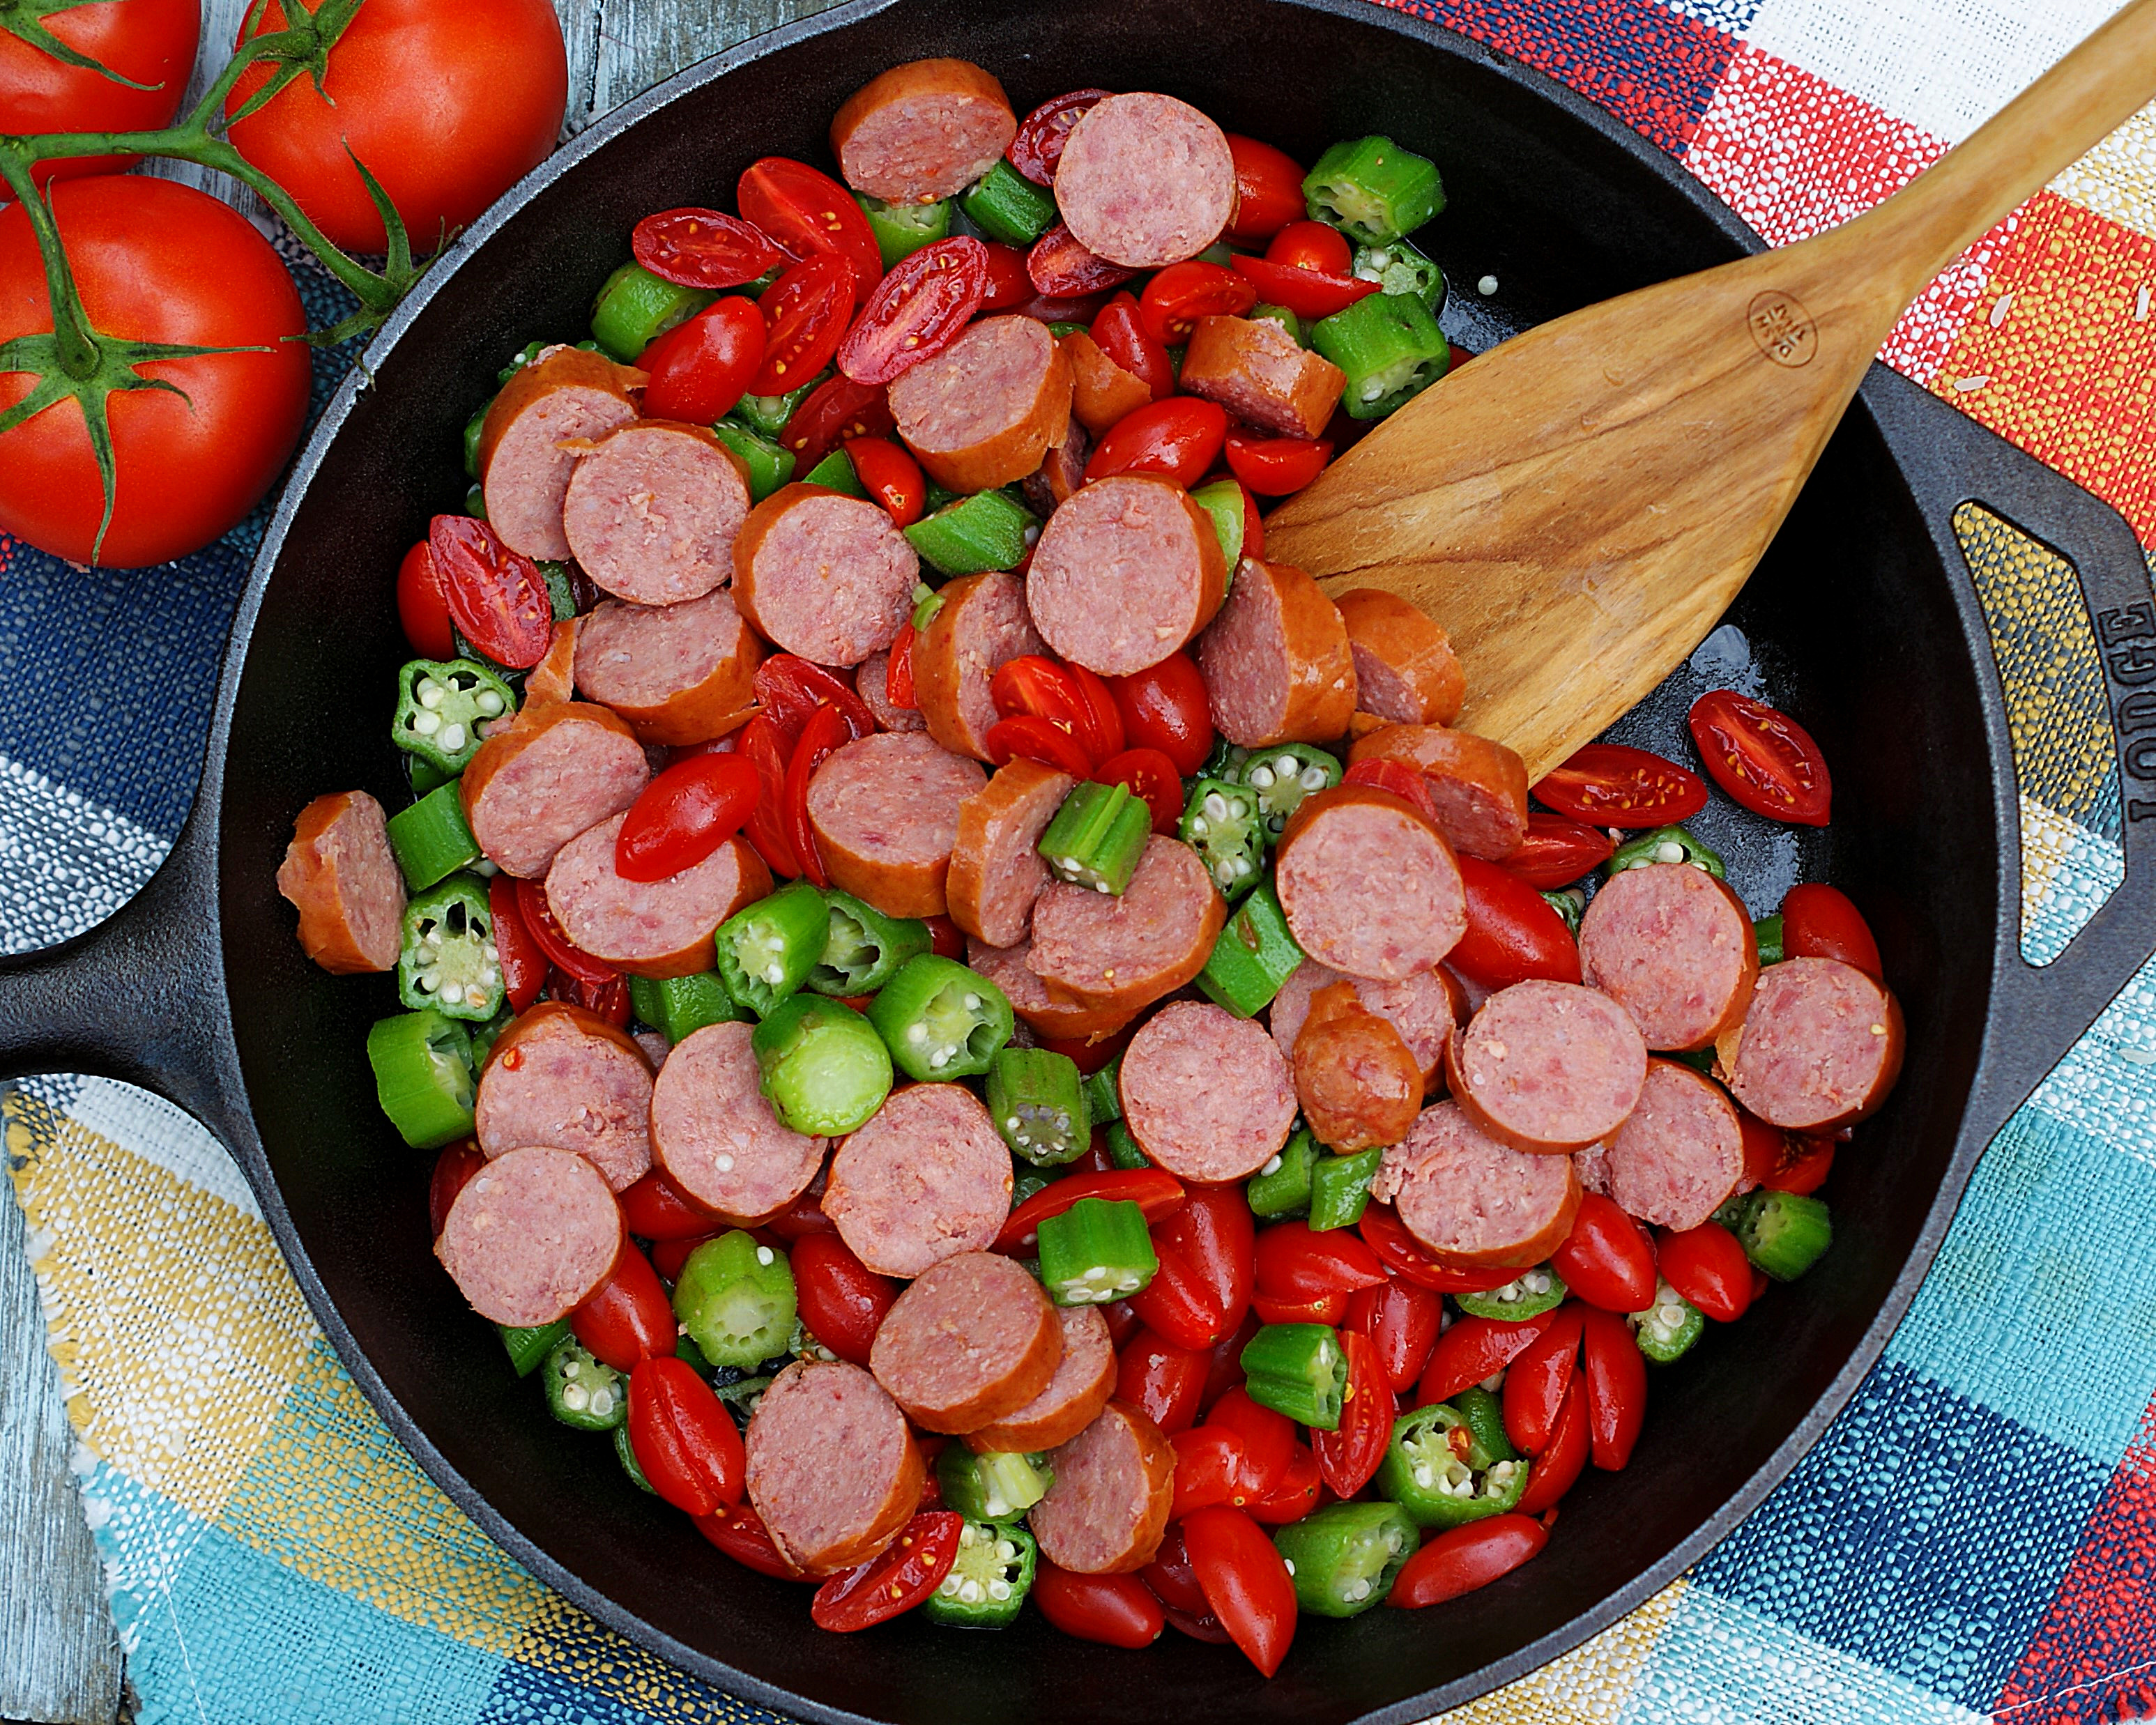 Tomatoes, Okra and smoked sausage in a skillet ready to sautee.